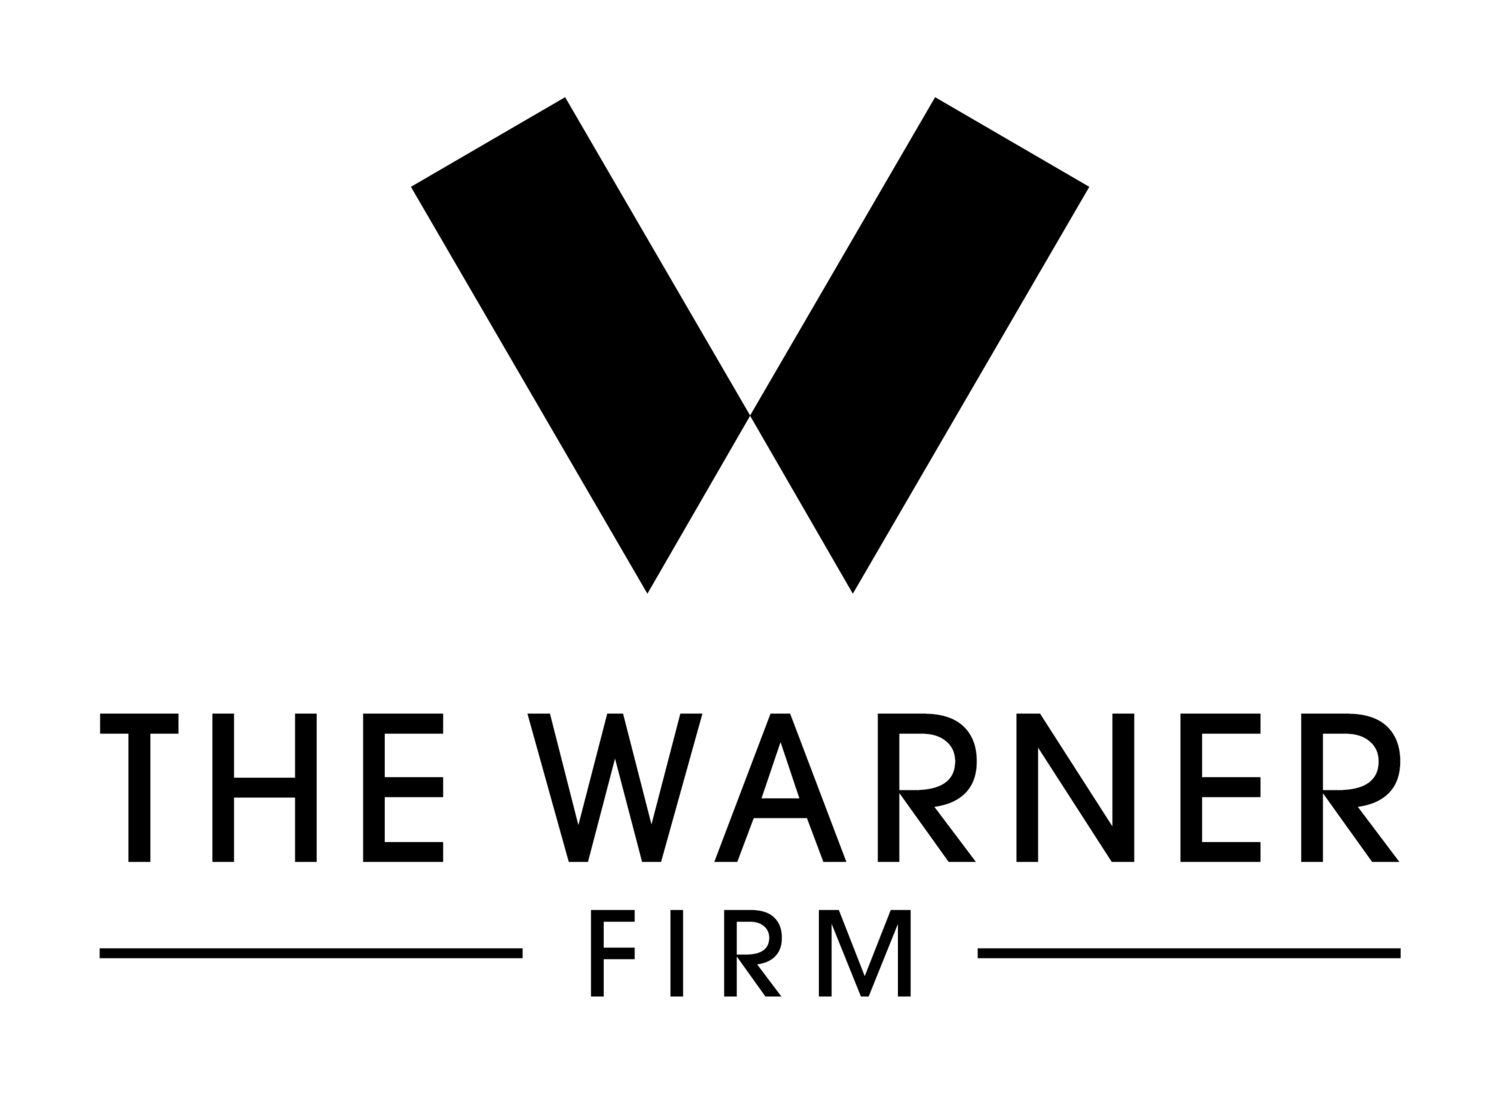 The Warner Firm